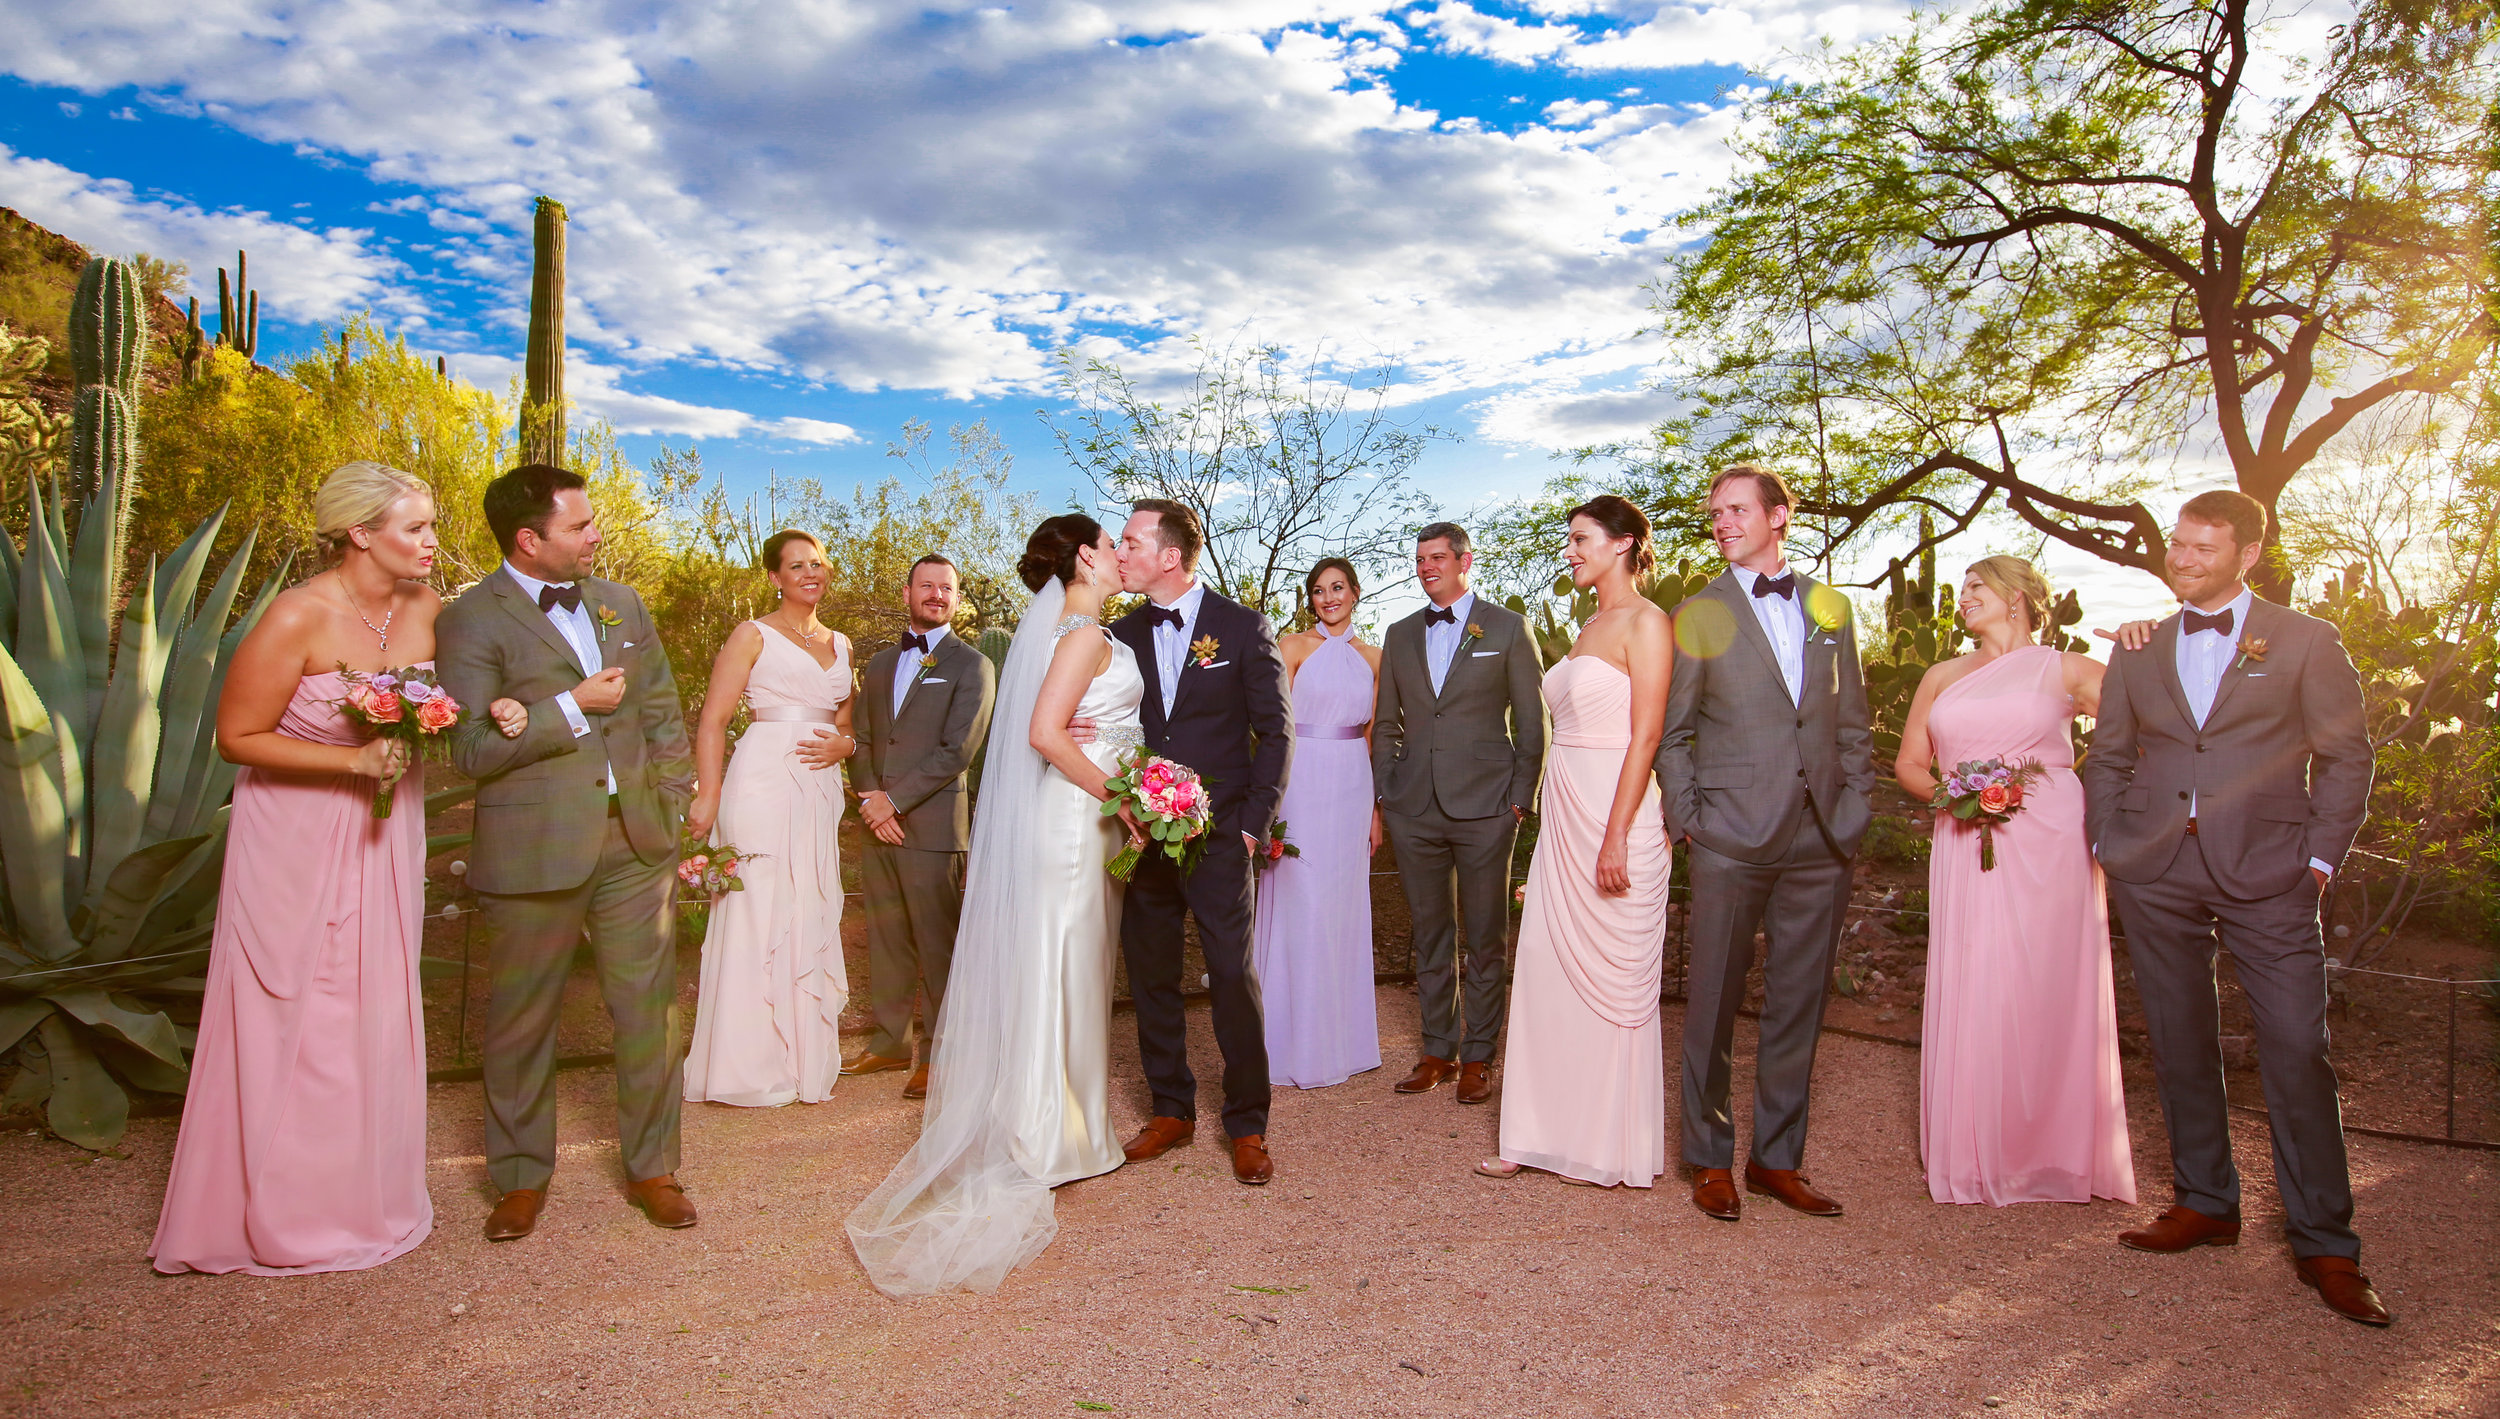 21 bridal party photos bridal party poses sunset bridal party photos Mod Wed Photography Life Design Events.jpg